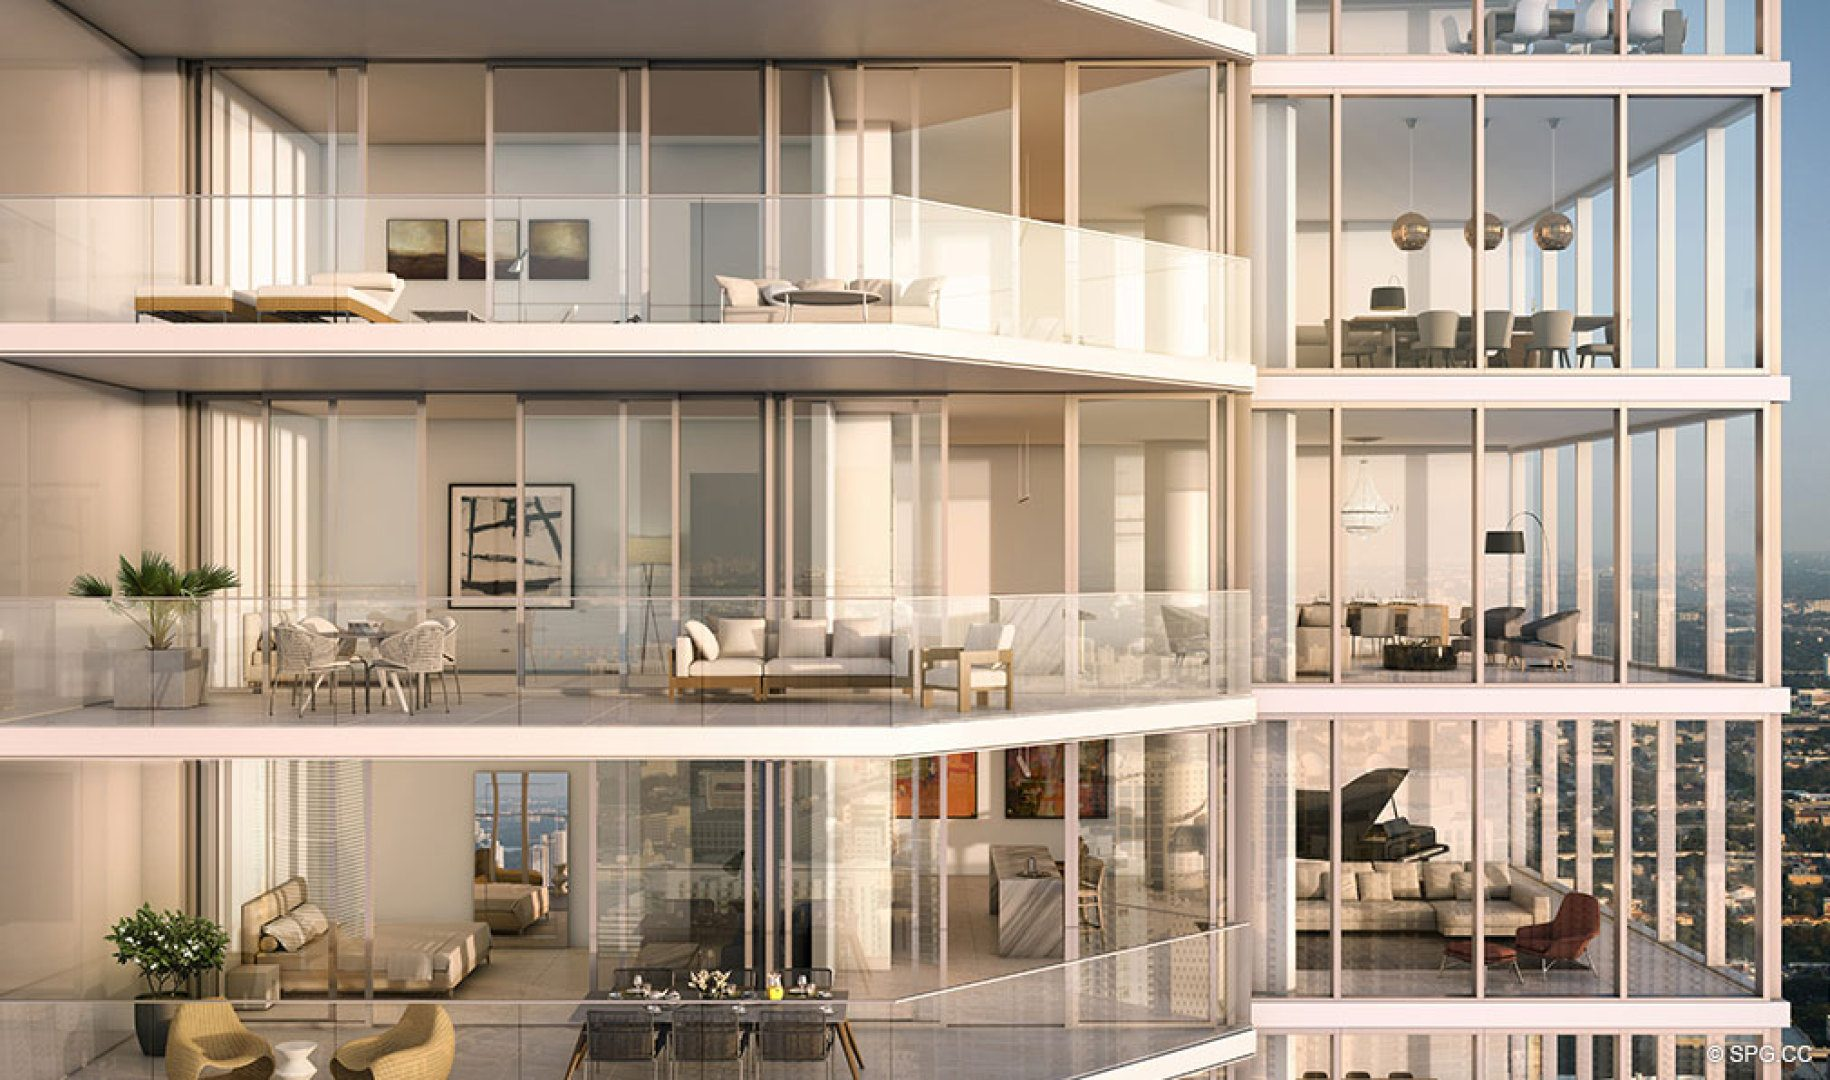 Spacious Terrace Space at One River Point, Luxury Waterfront Condos in Miami, Florida 33130